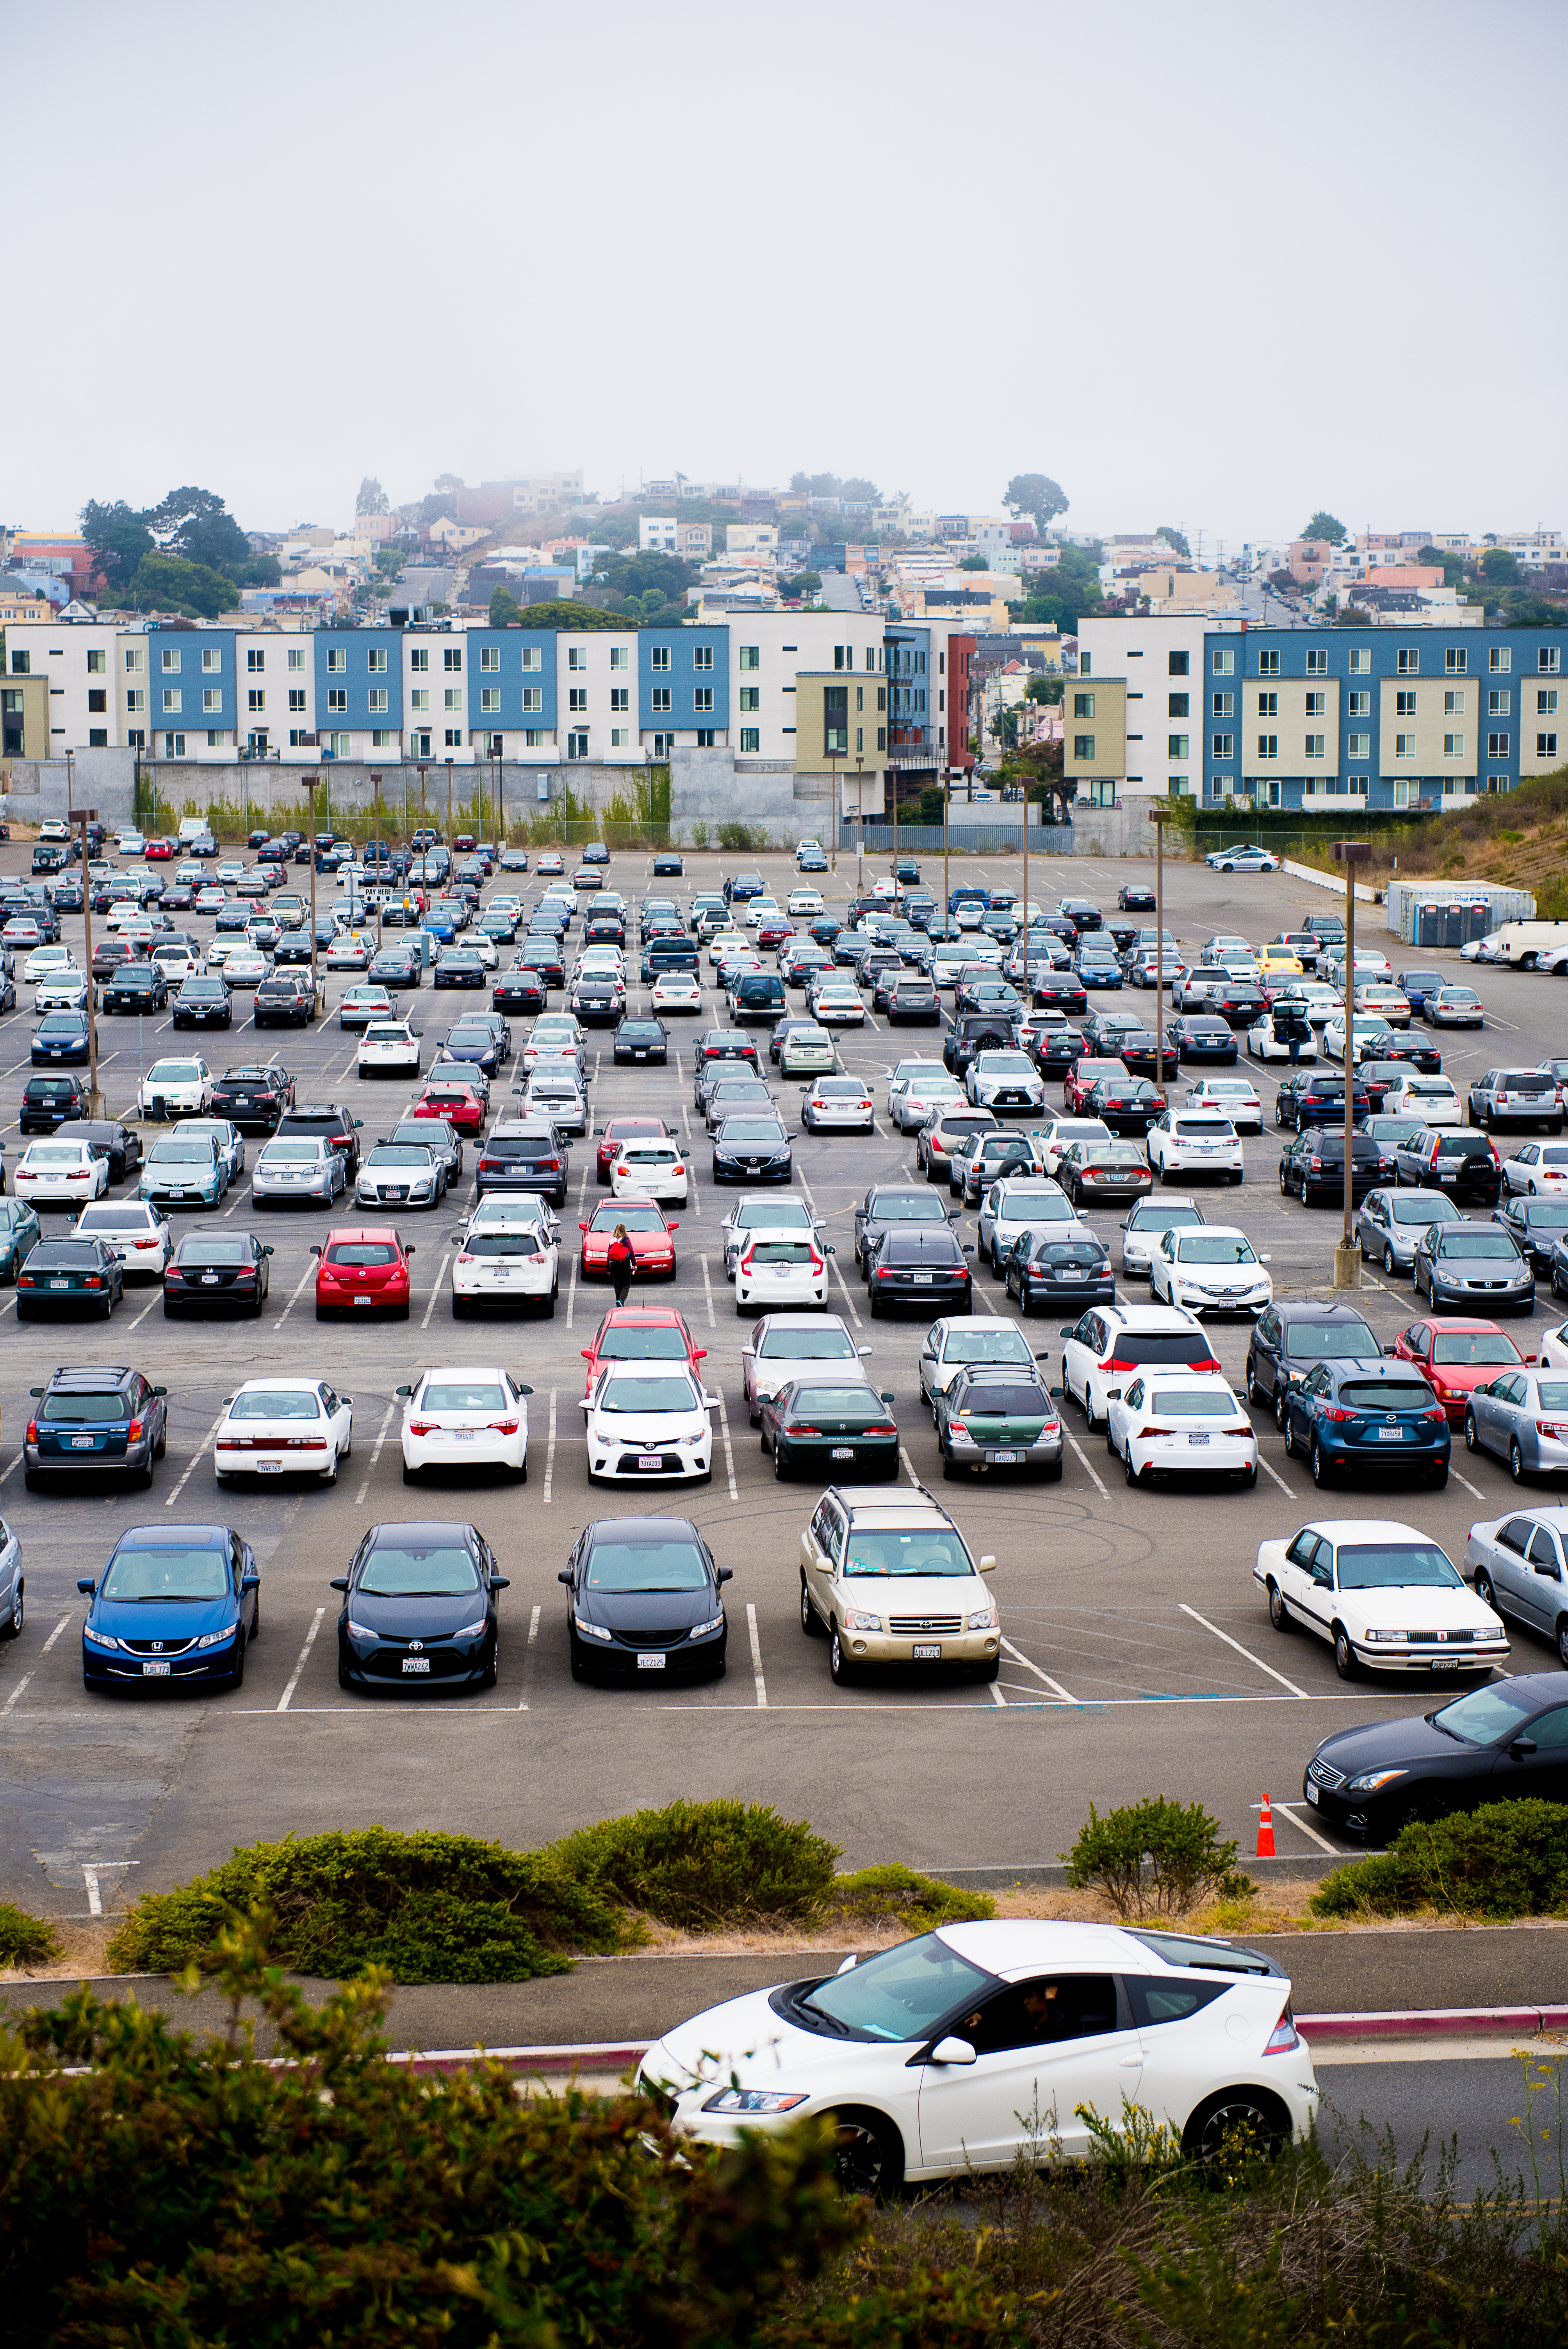 The Balboa Reservoir parking lot nearly full during school hours. Photo taken on Aug. 28, 2017 by Otto Pippenger.